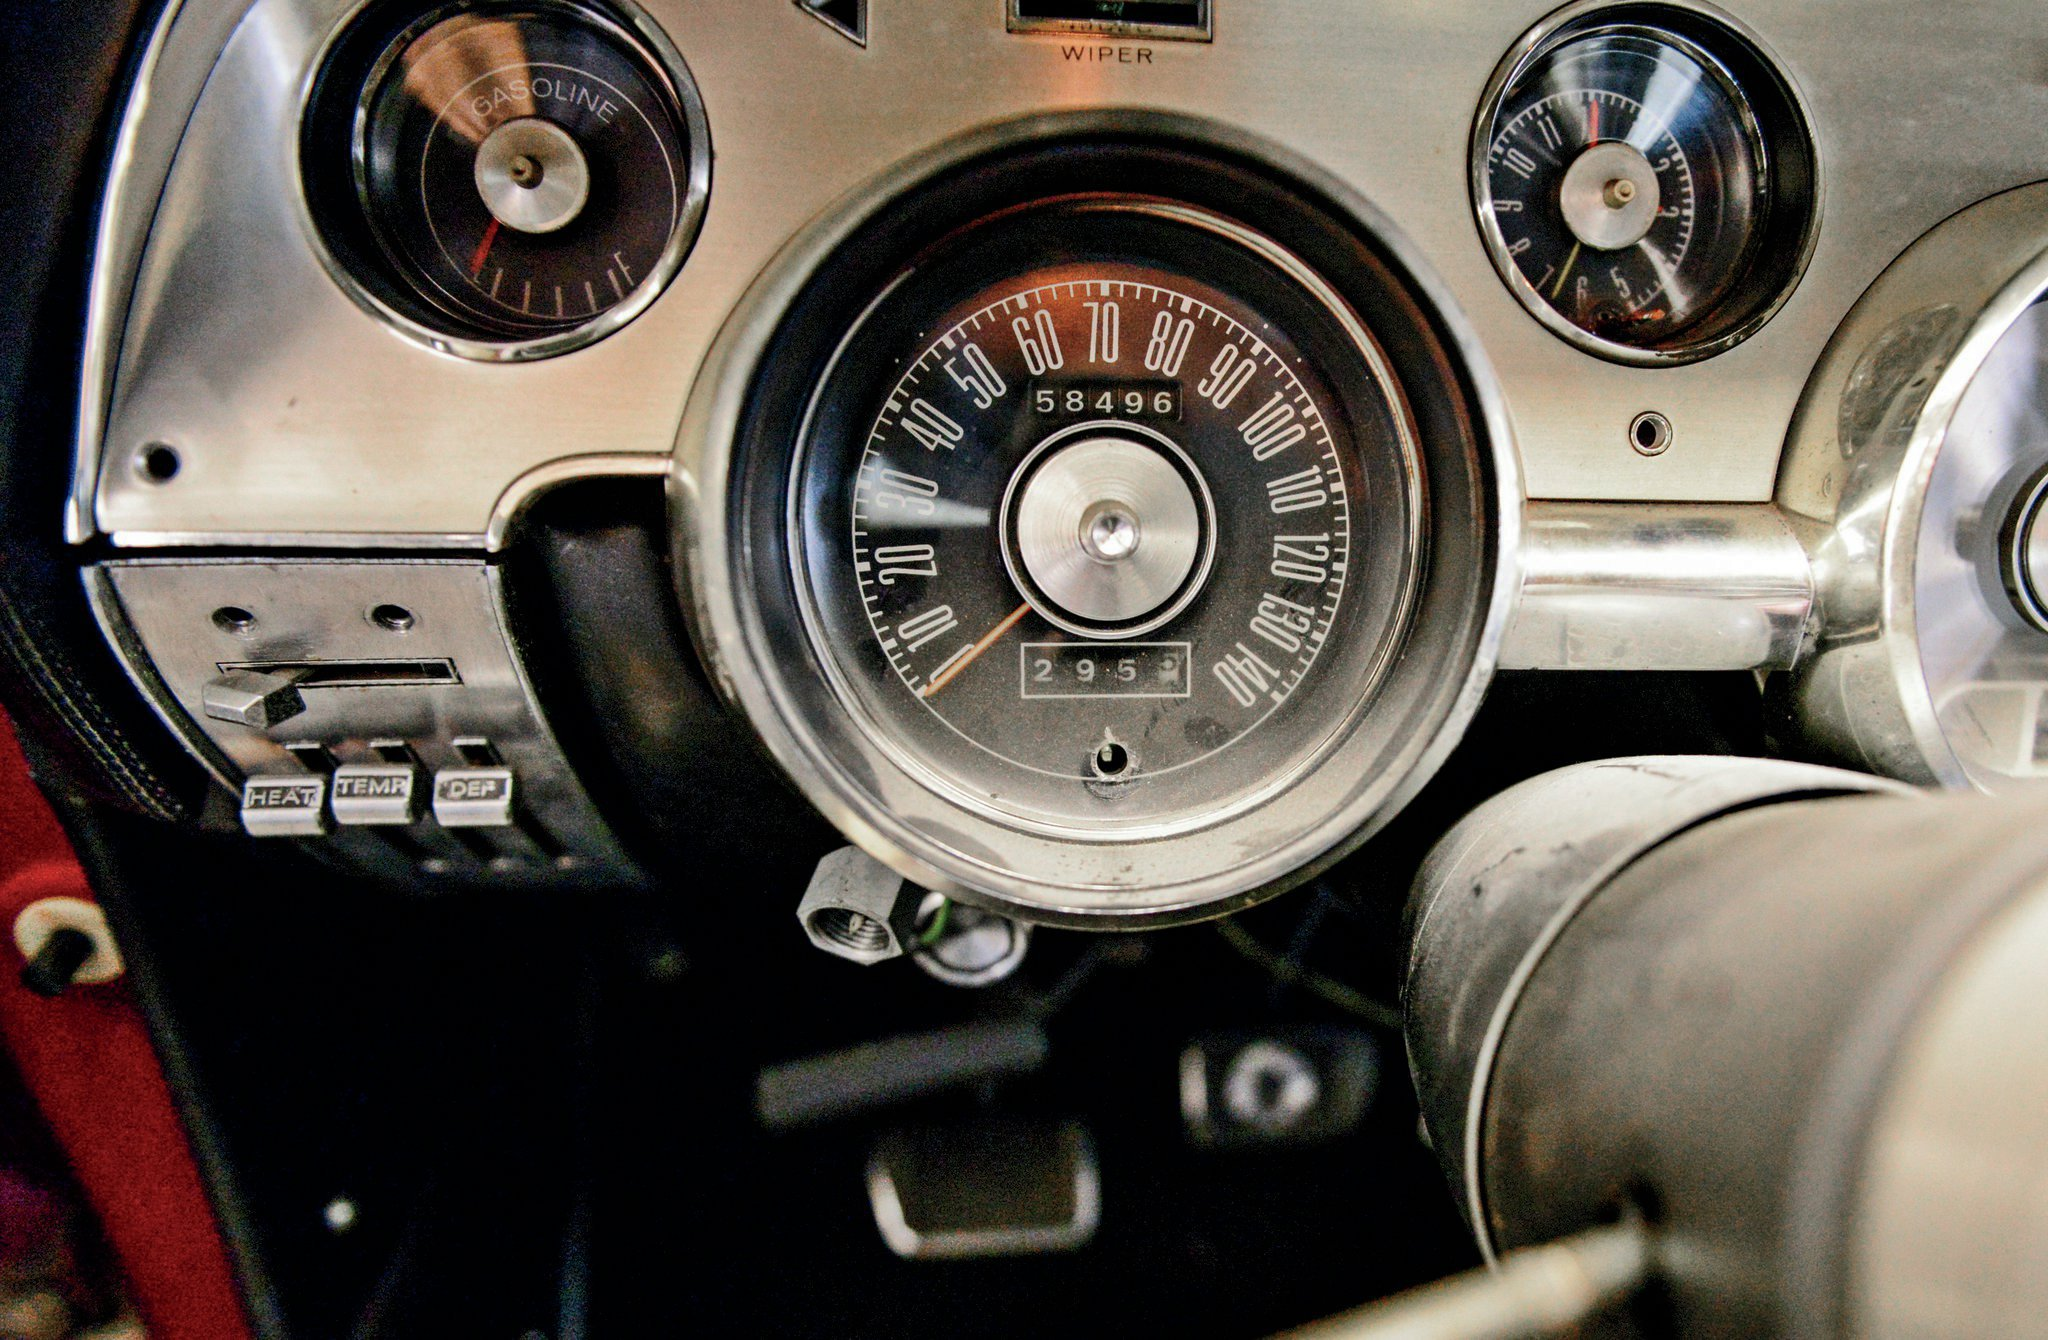 1967 shelby gt 500 ford mustang interior speedometer